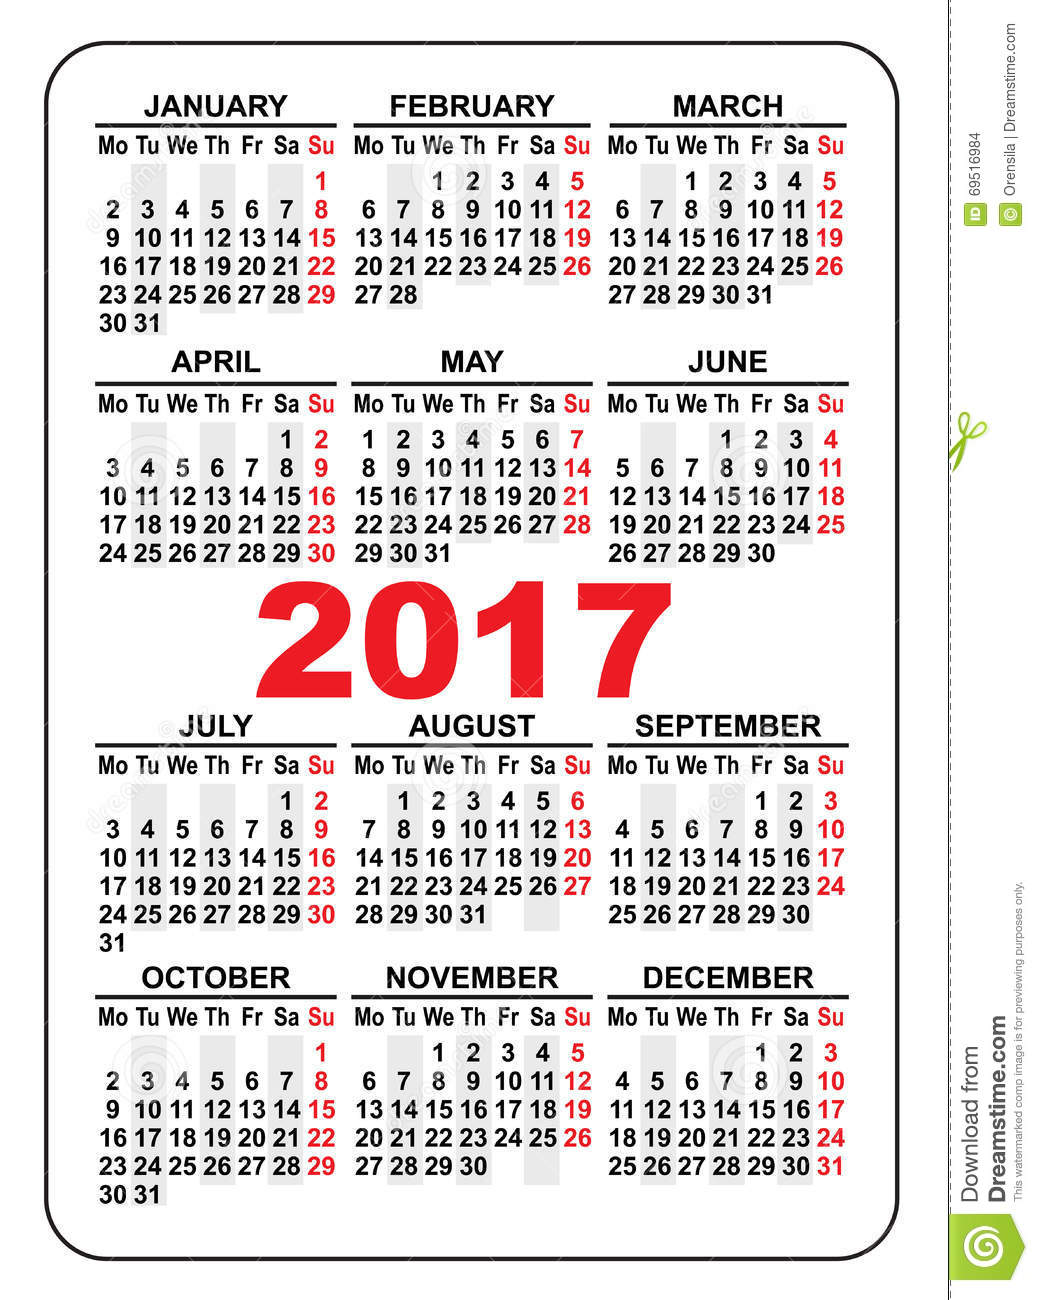 2017 Pocket Calendar | 2017 calendar with holidays